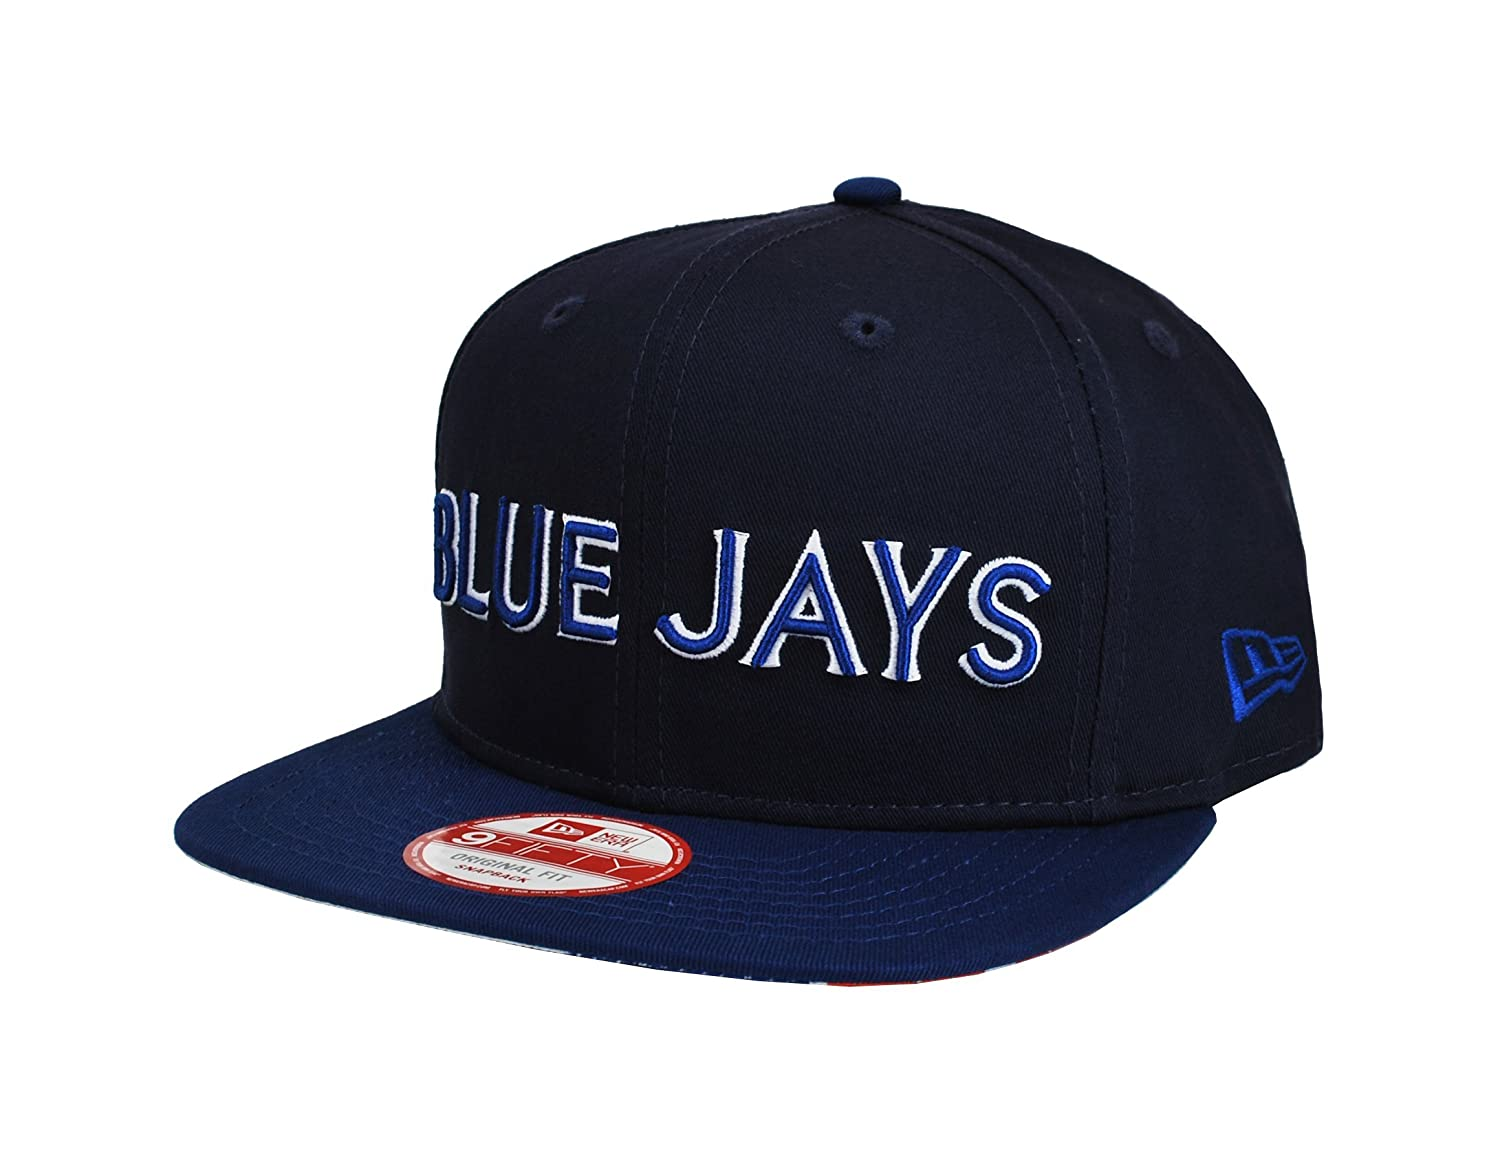 New Era Men's 9Fifty MLB Cap Toronto Blue Jays Navy Blue Snapback Cap